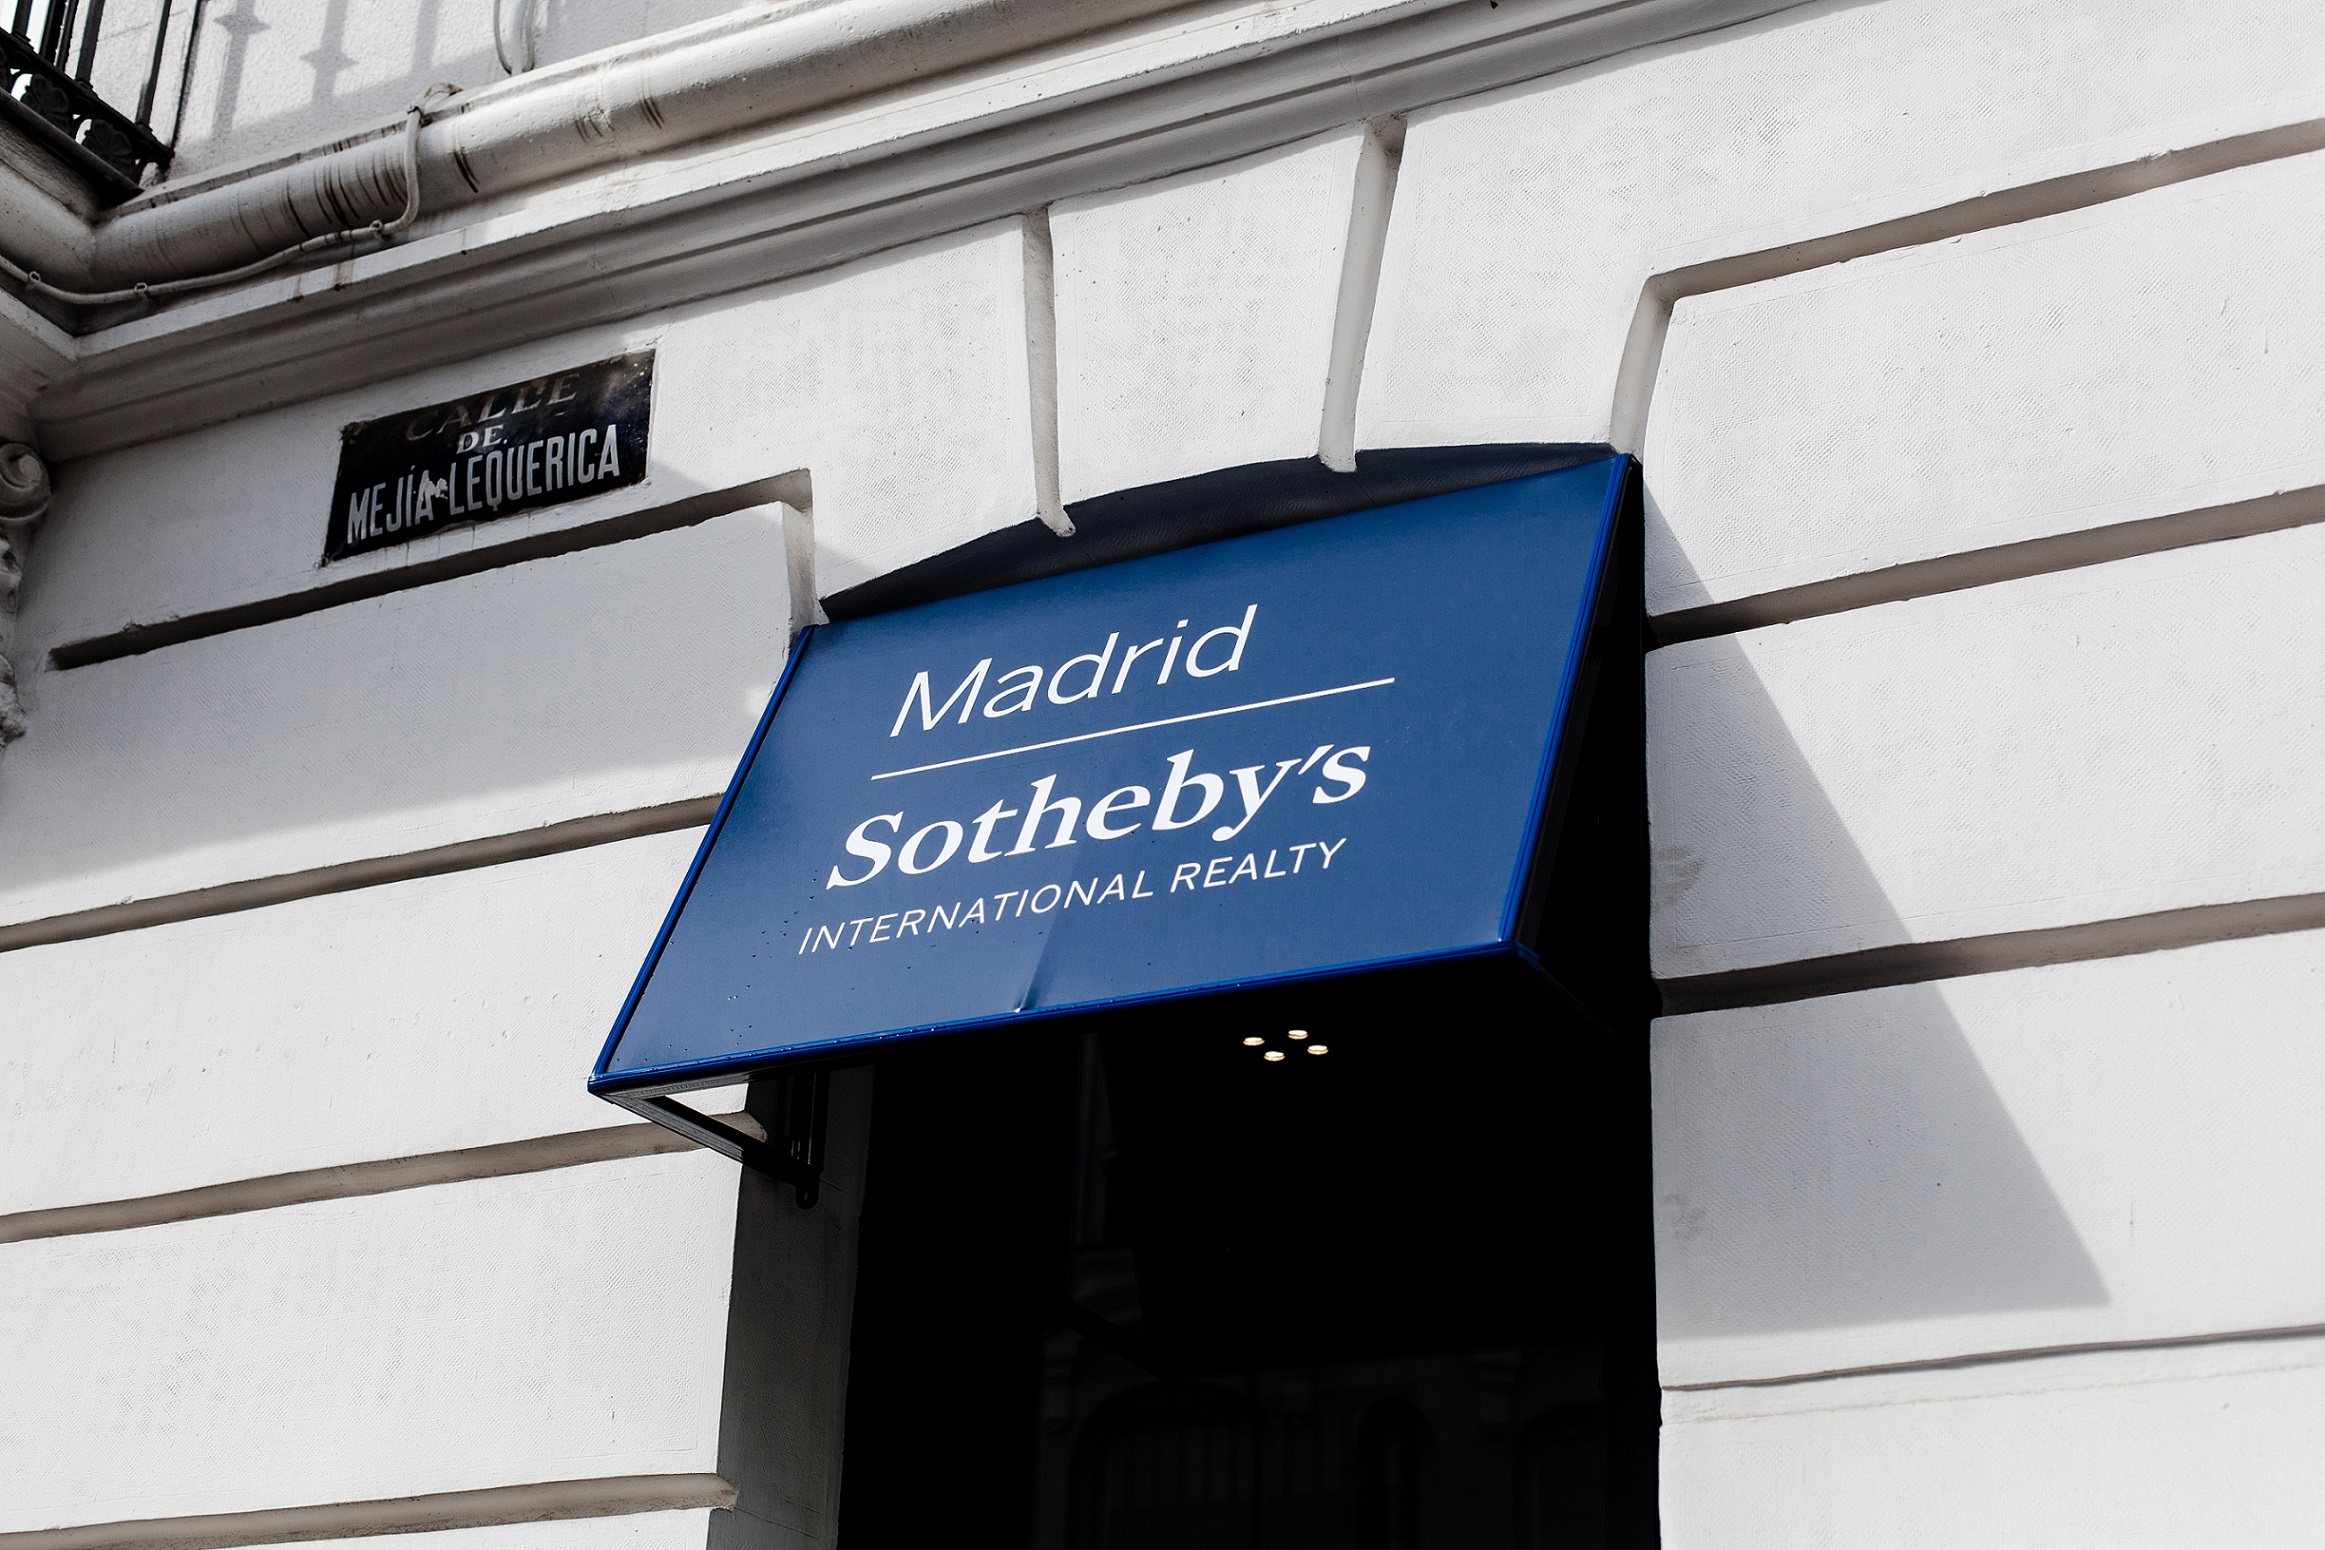 Madrid Sothebys International Realty opening (4).jpg